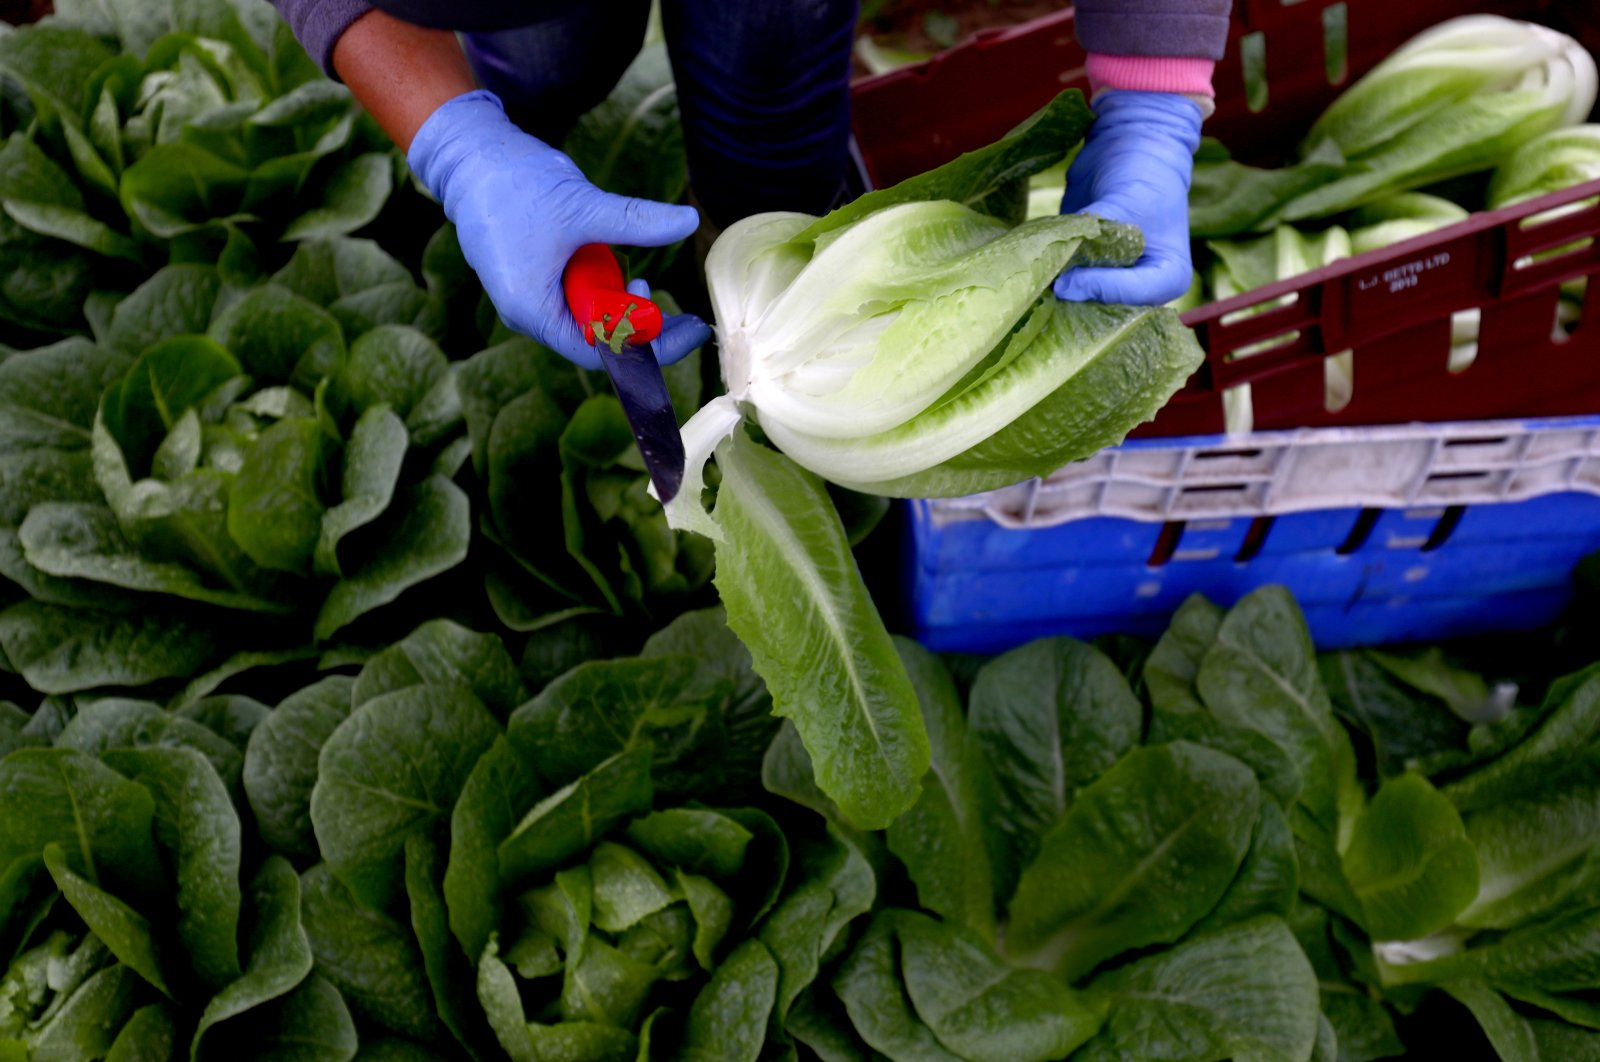 A migrant worker picks lettuce on a farm in Kent, Britain, July 24, 2017. (Reuters Photo)